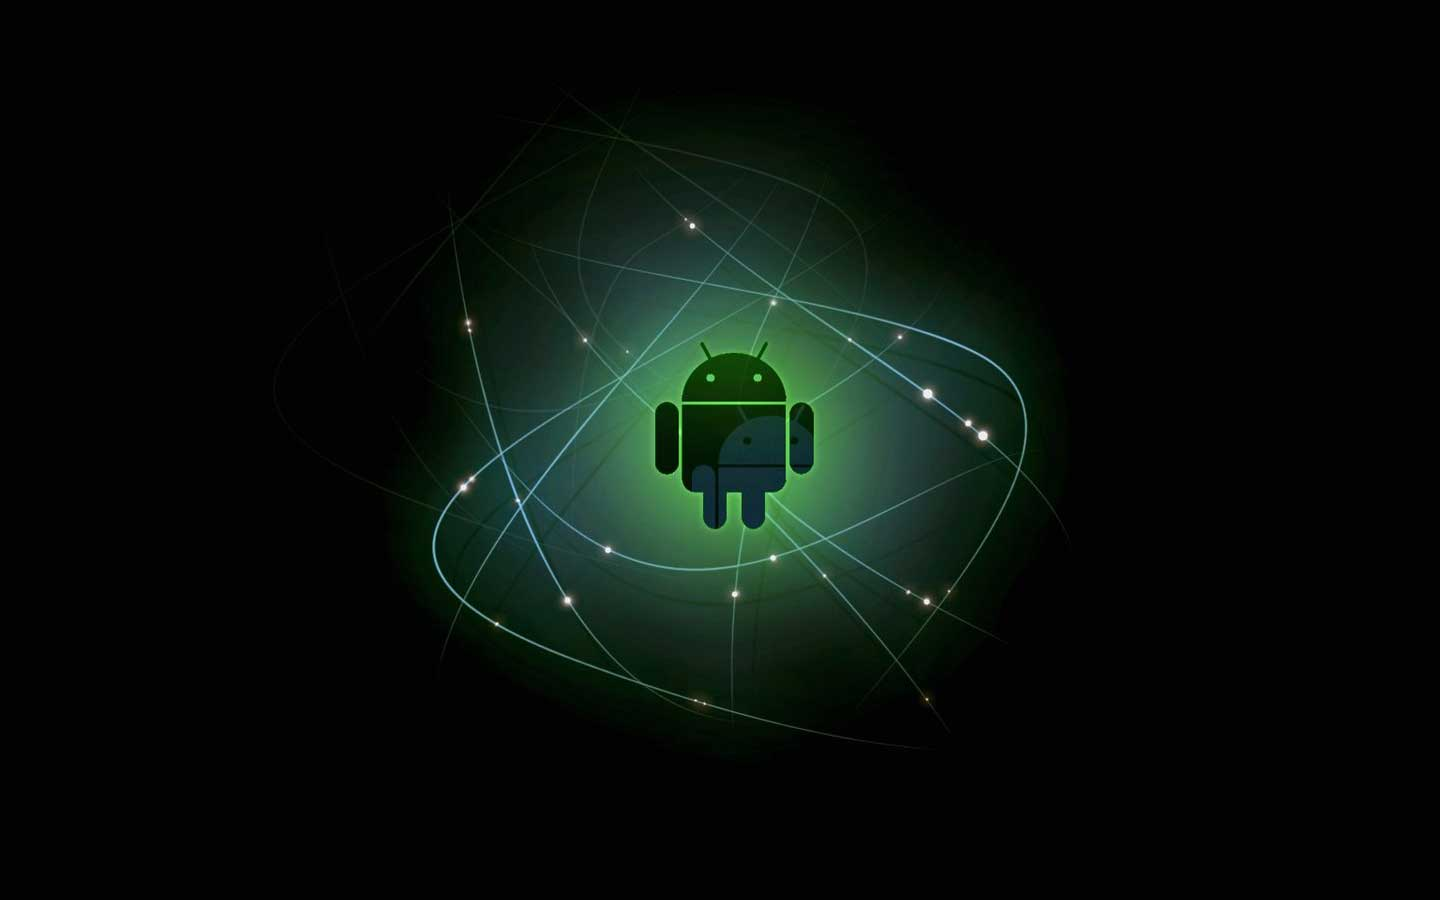 Android full colour dark hd wallpaper wallpaper background hd android backgrounds wallpaper cave image source from this voltagebd